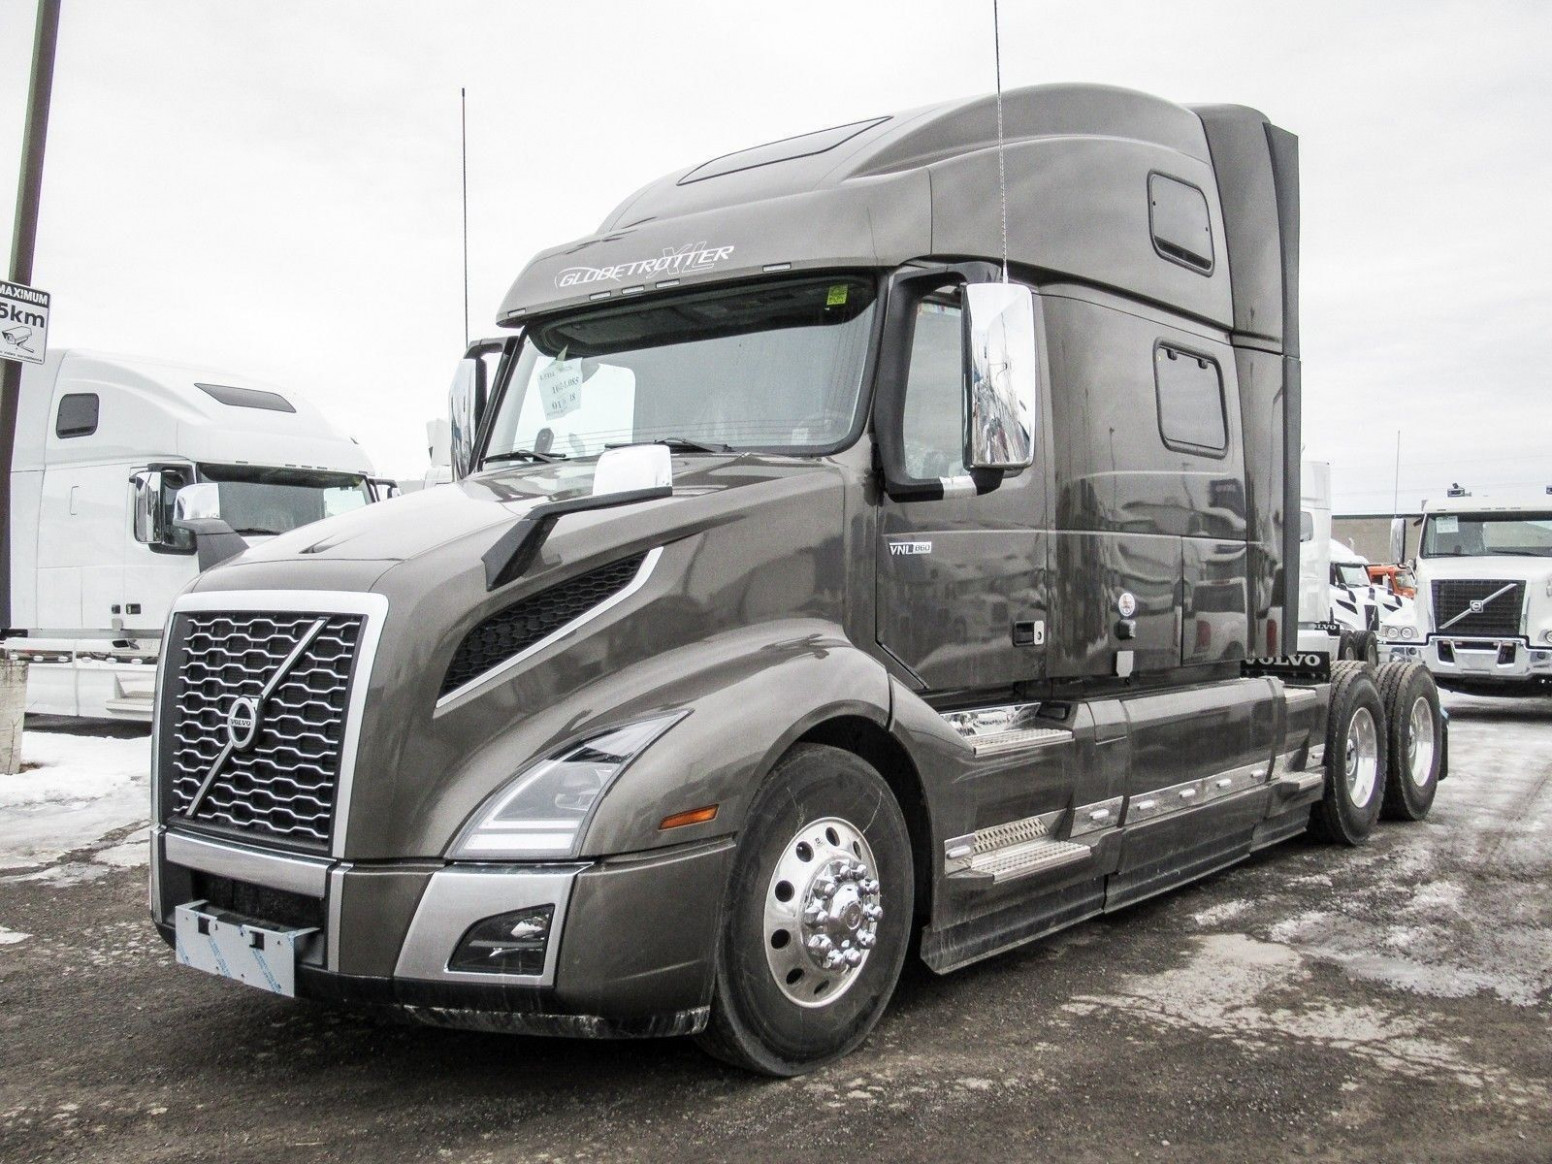 5 Volvo Vnl 5 Exterior Colors (With images) | Volvo trucks ...